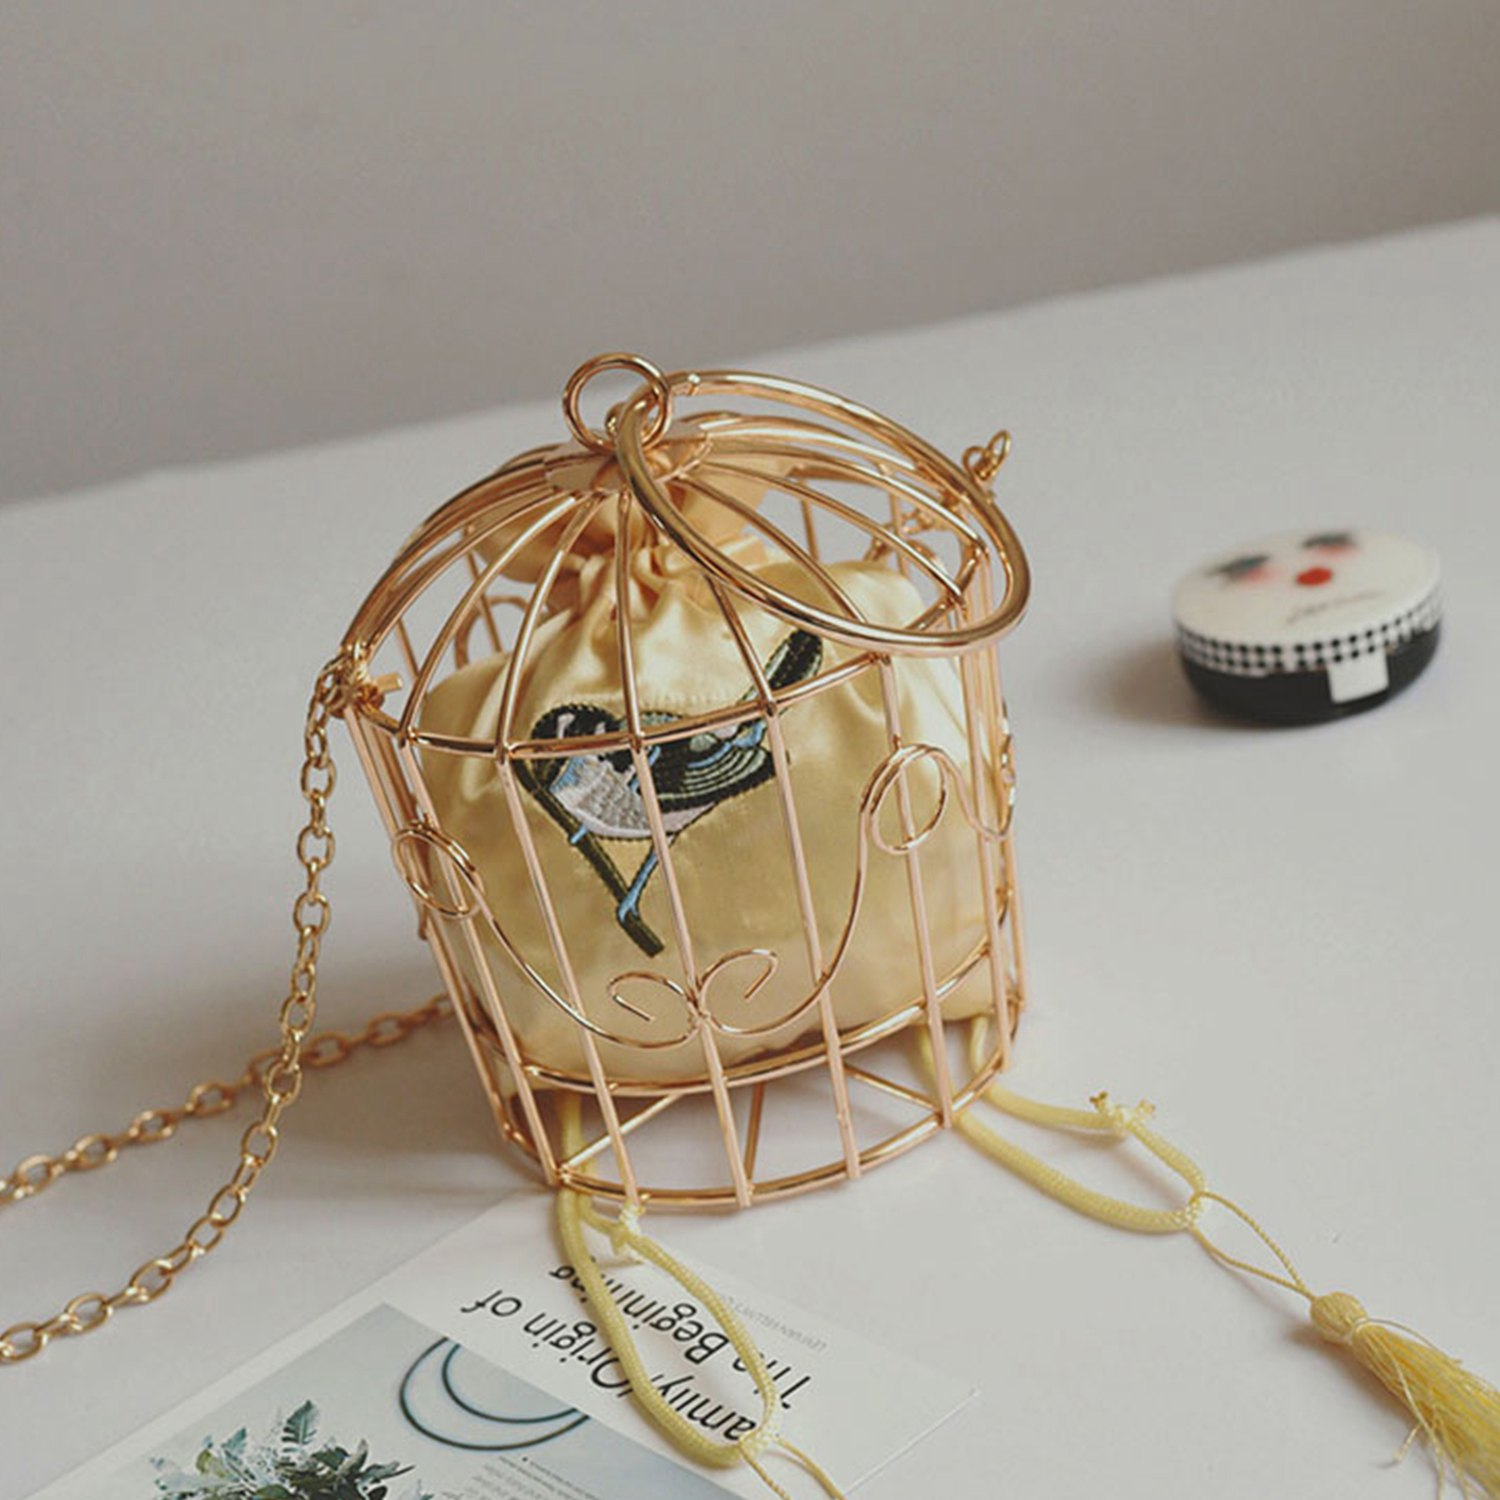 Personality Bird Cage Women Handbag Tote Metal Cage Girls Top-Handle Bags Coin Purse Fashion Party Pouch Tassel ClutchPersonality Bird Cage Women Handbag Tote Metal Cage Girls Top-Handle Bags Coin Purse Fashion Party Pouch Tassel Clutch